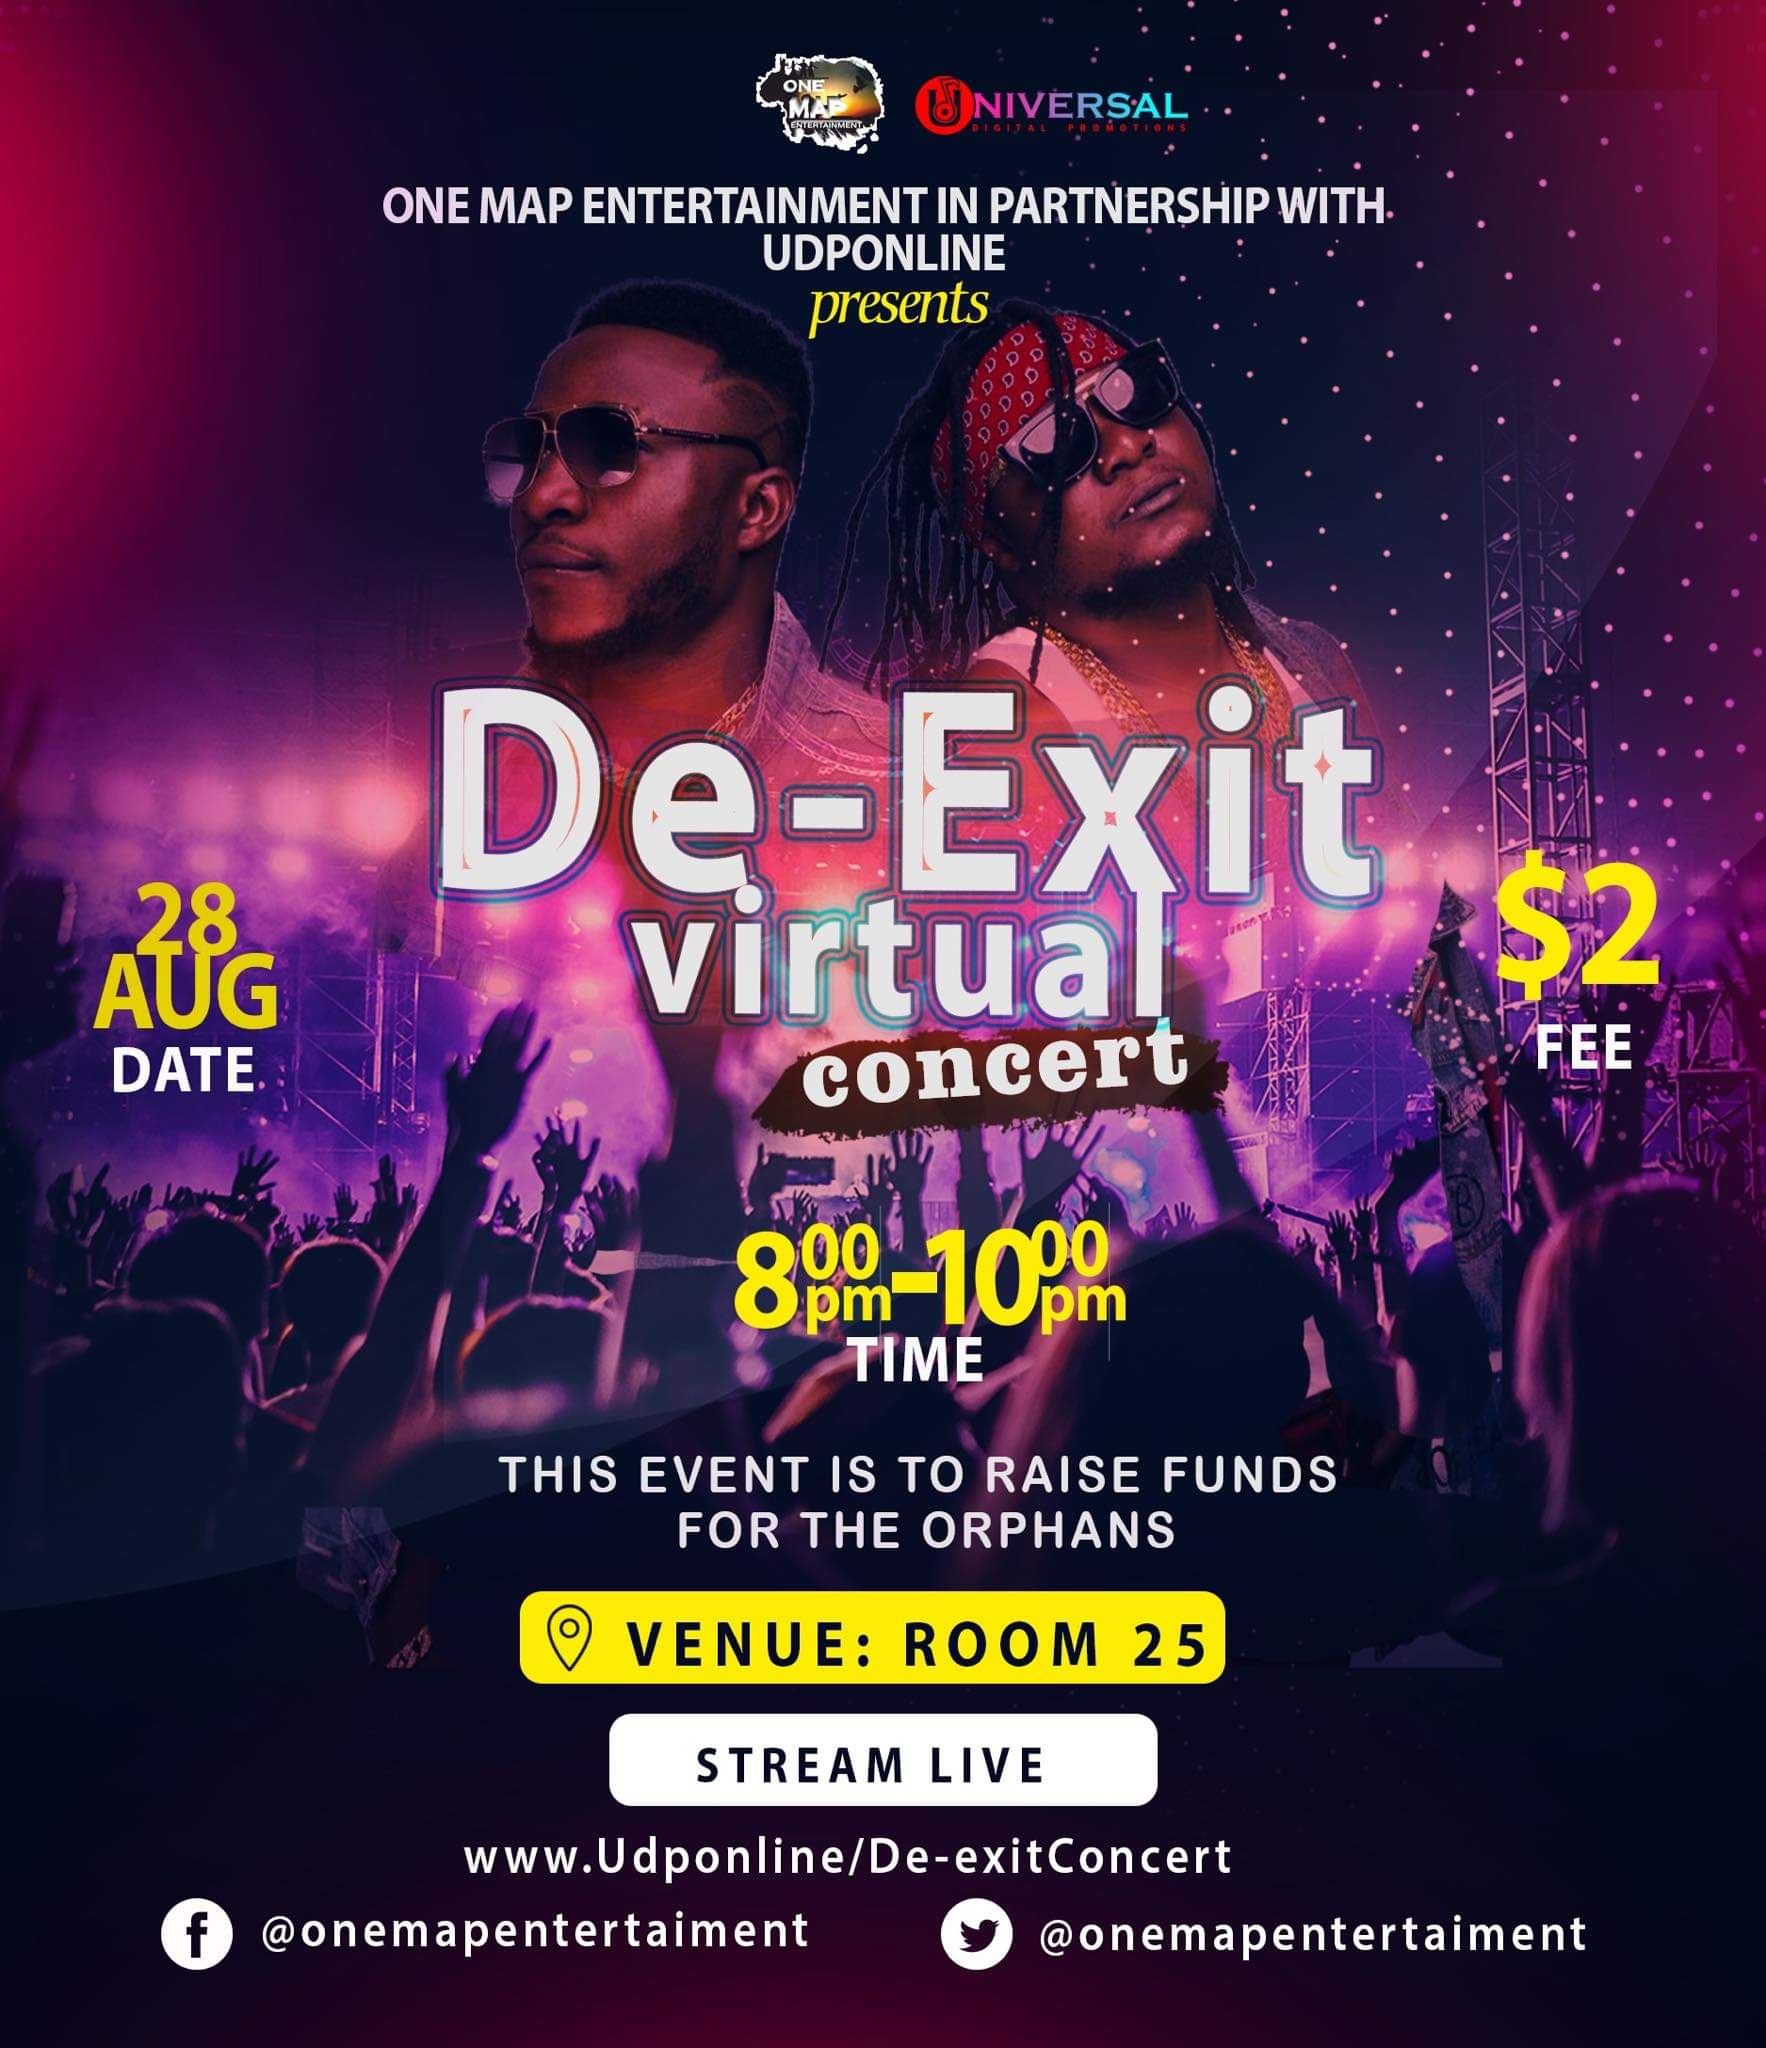 De-Exit To Stage Virtual Concert On August 28 To Support The Needy